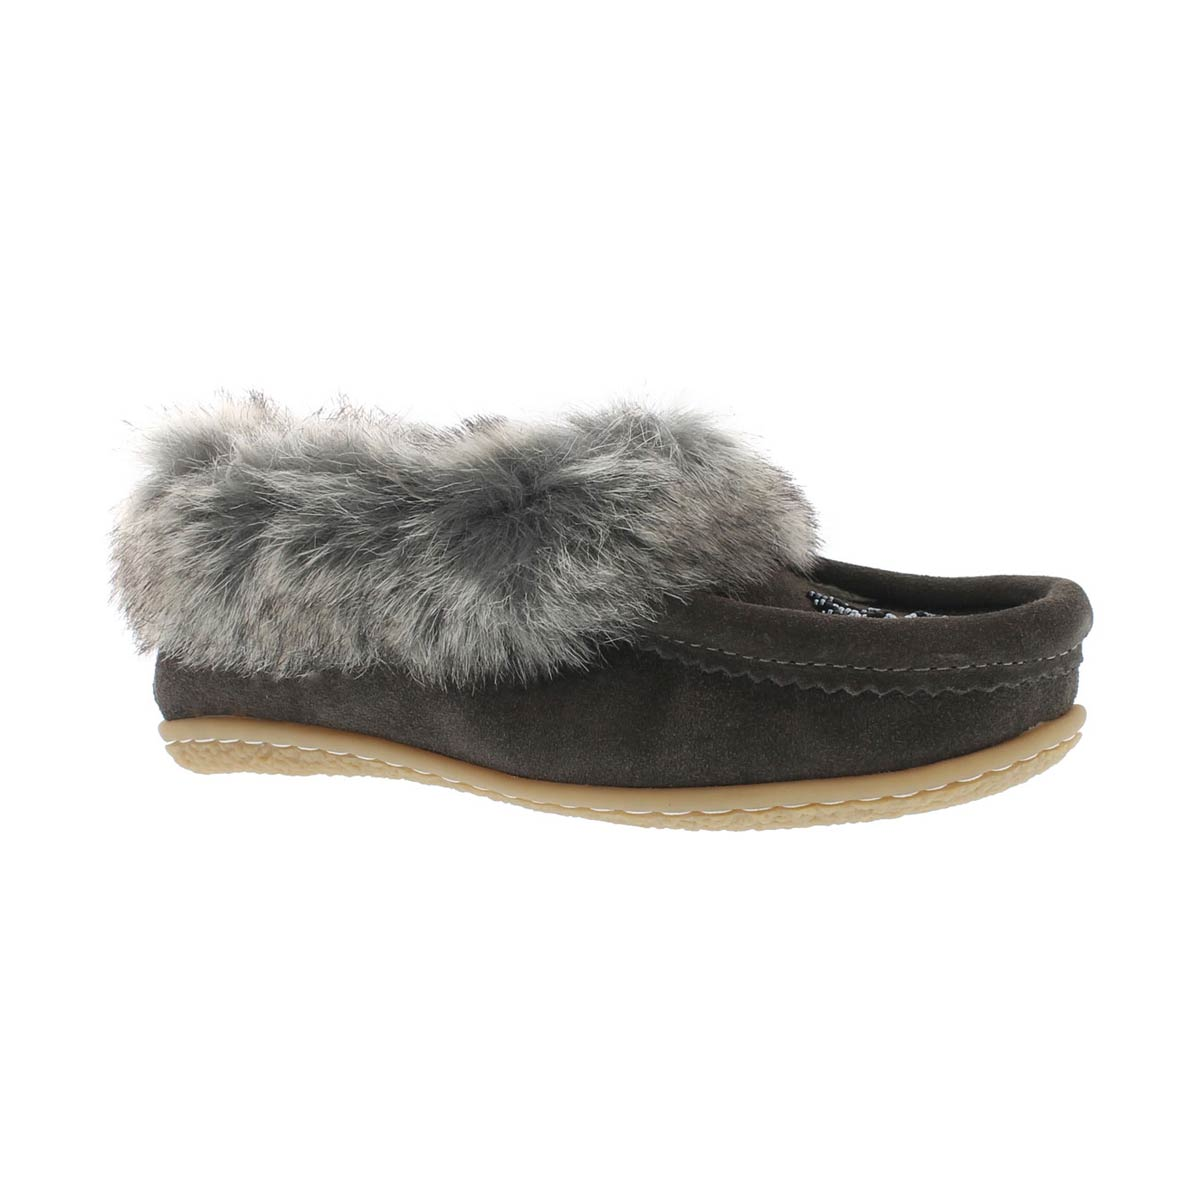 Girls' CUTE 2 JR grey faux rabbit moccasins